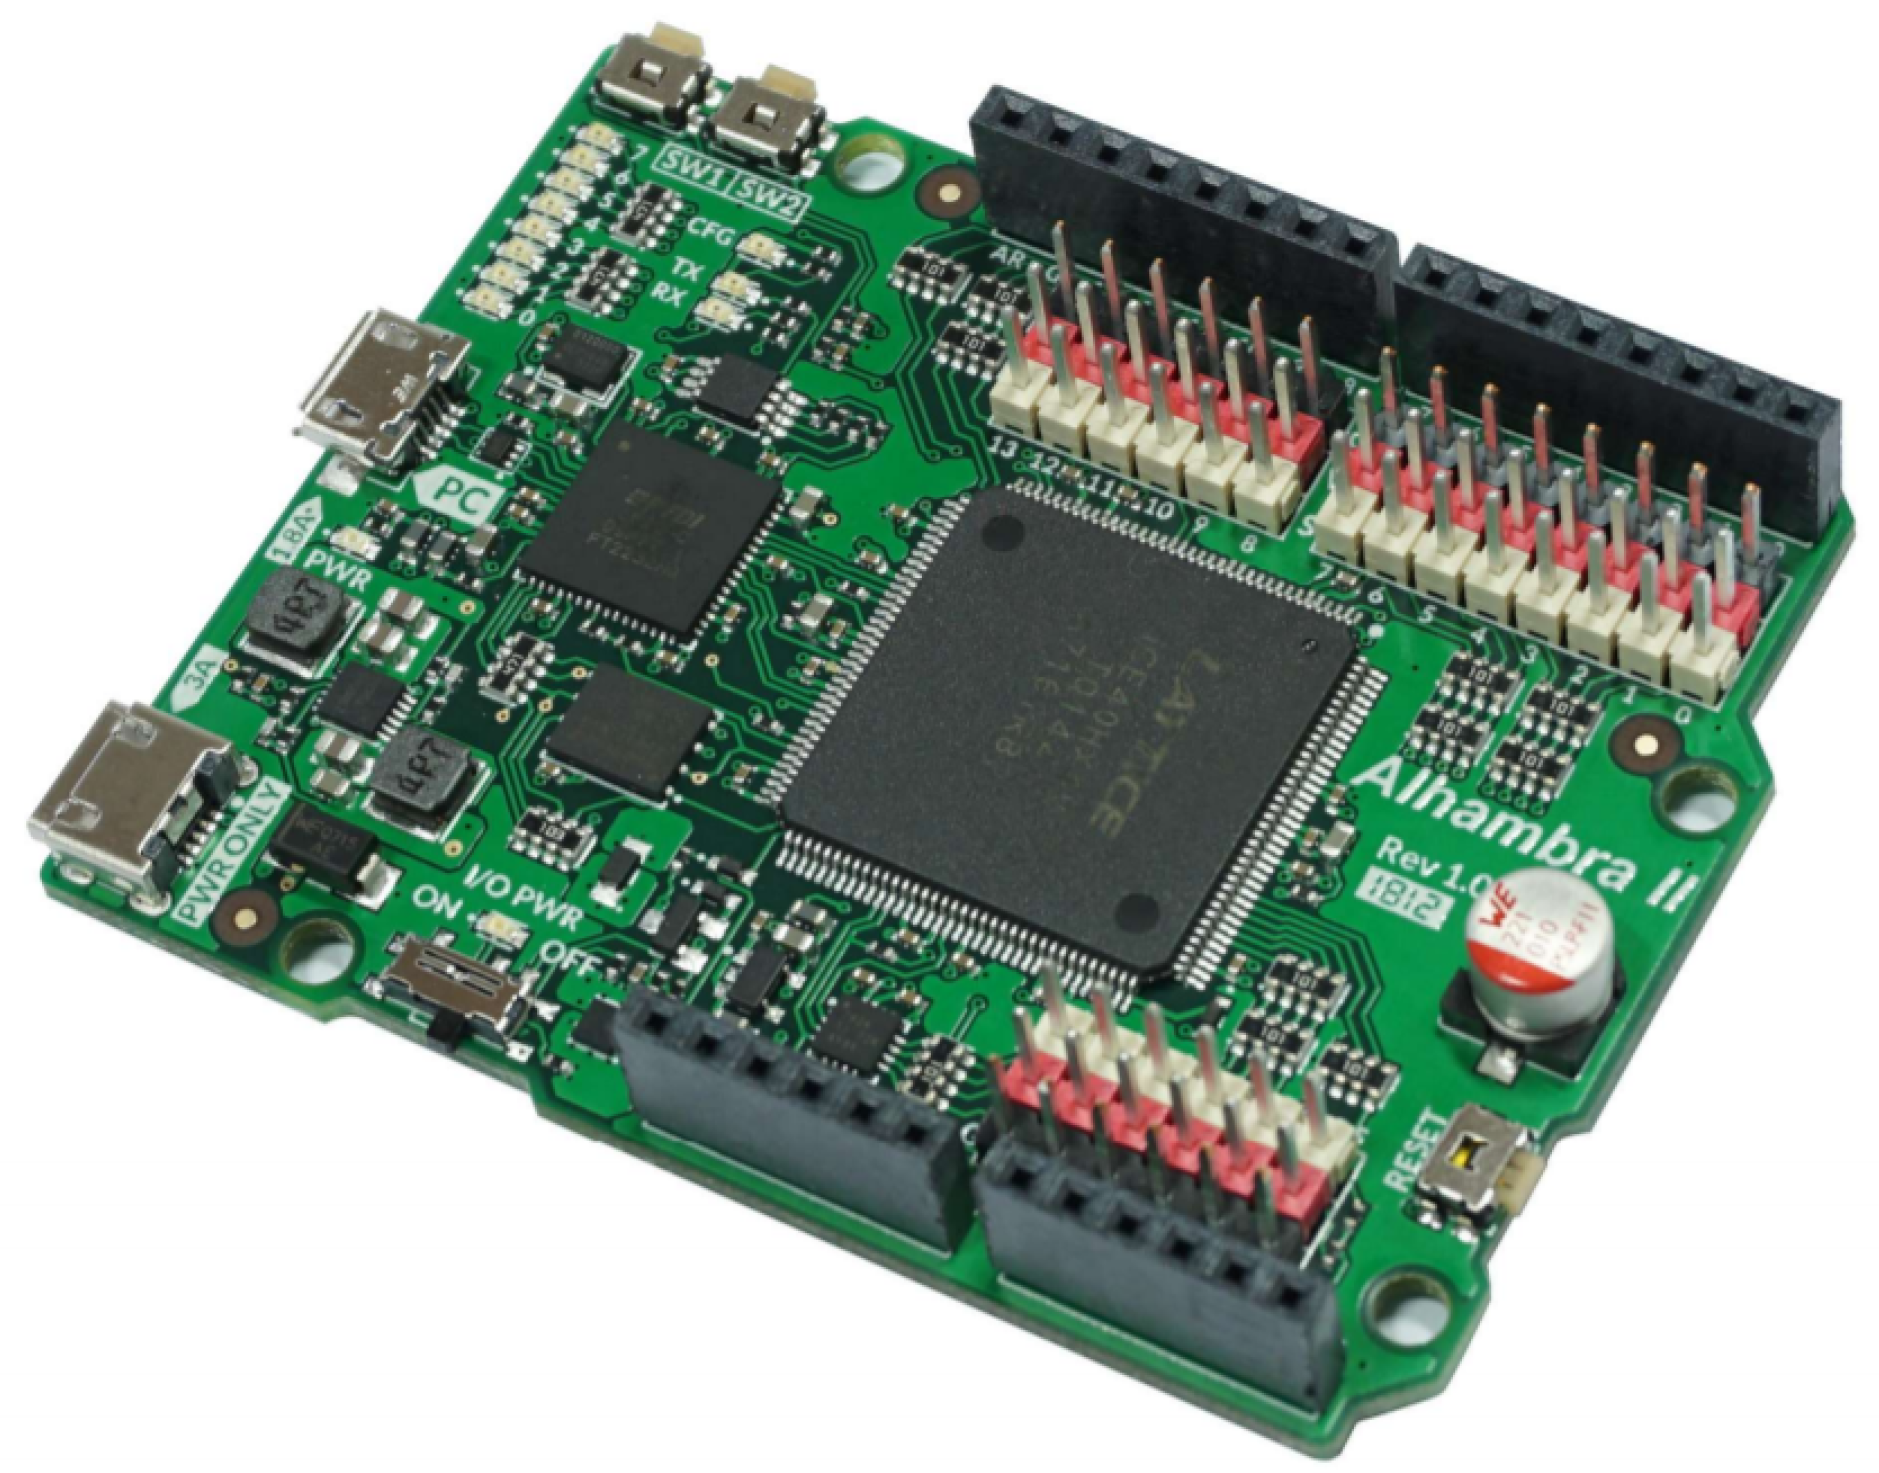 Electronics | Free Full-Text | Control System in Open-Source FPGA